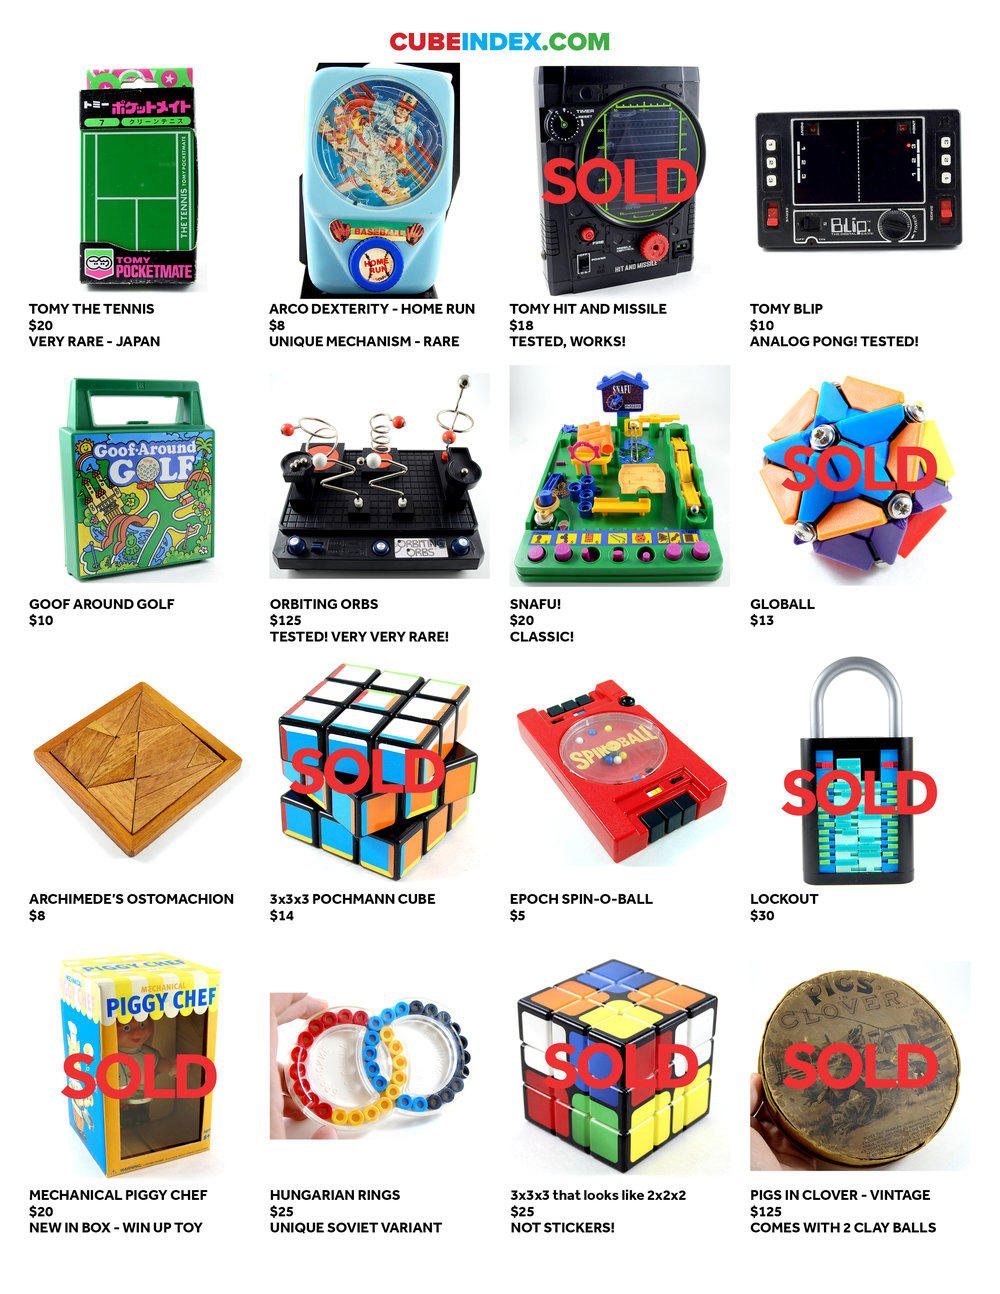 cube-index-for-sale-catalog-april-2017-v513.jpg